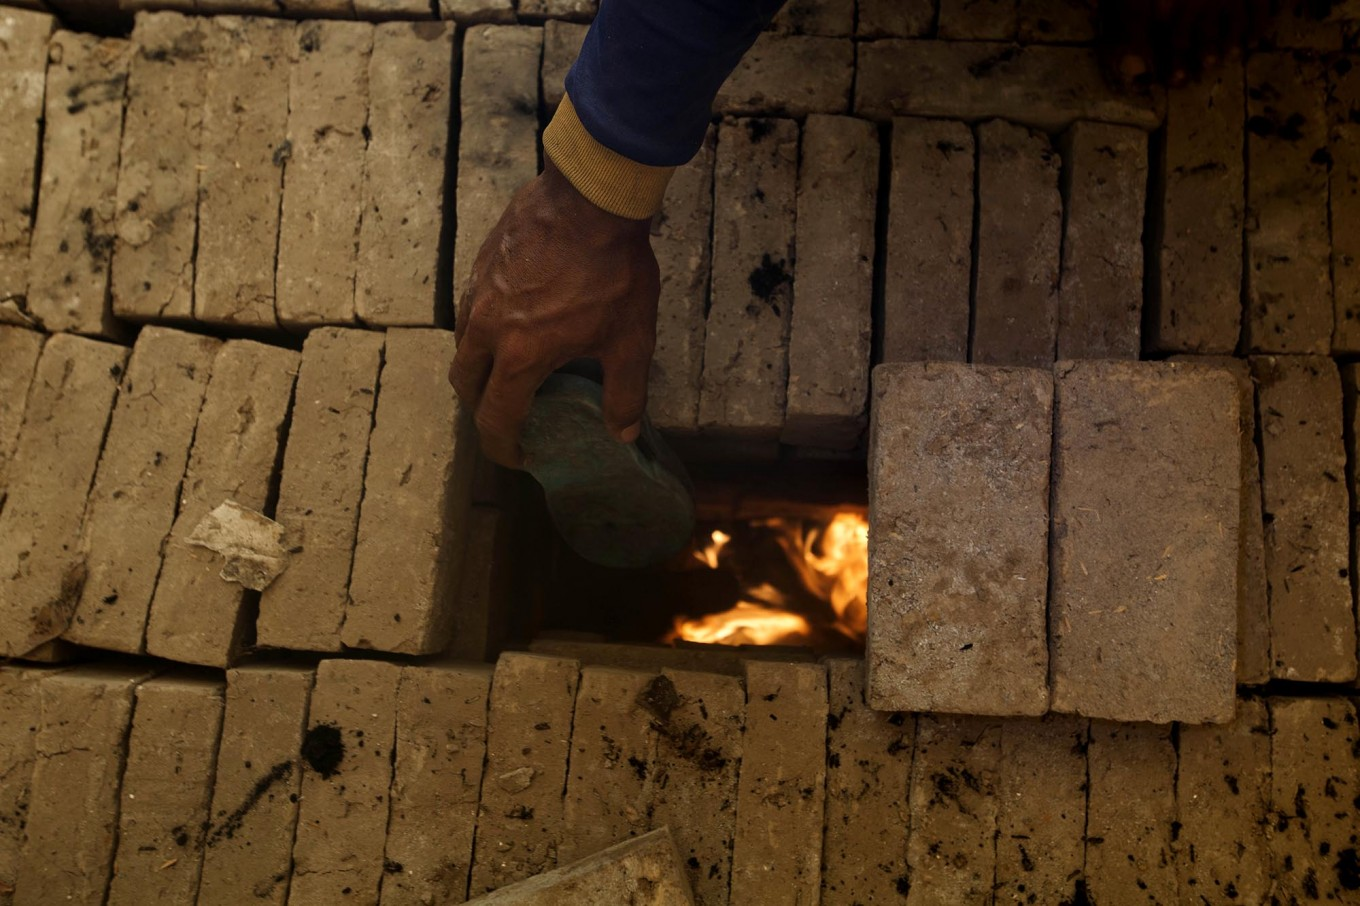 A craftsman puts an old rubber sandal and husk into a traditional stove to stoke a good fire with a high temperature for firing the bricks. JP/Sigit Pamungkas